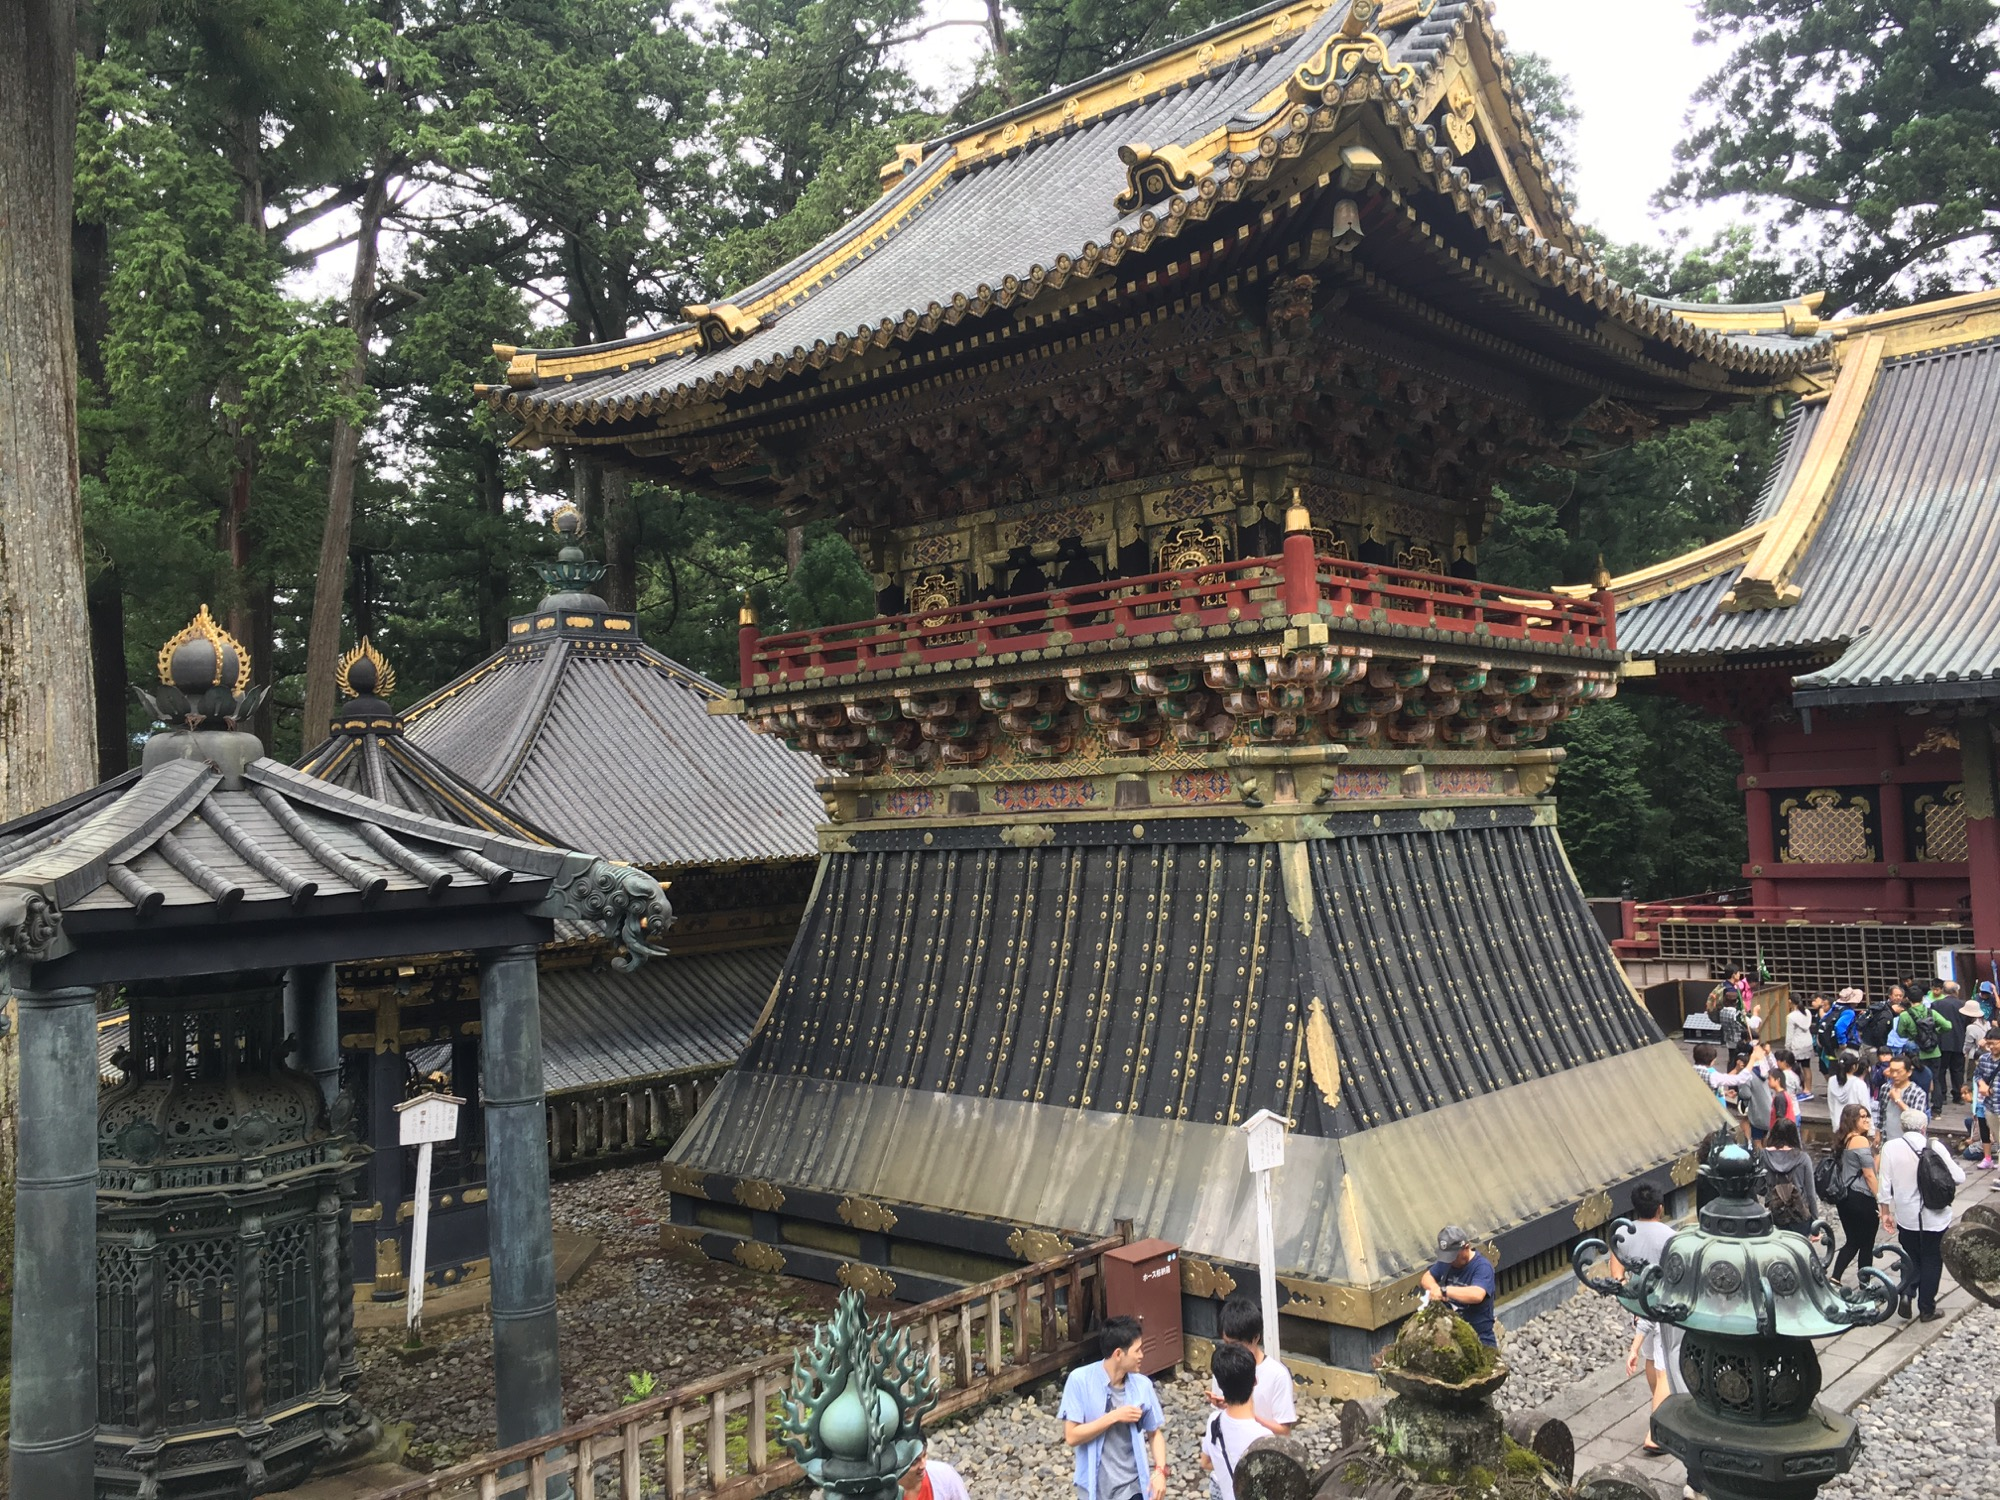 Another shot of the shrine and crowds